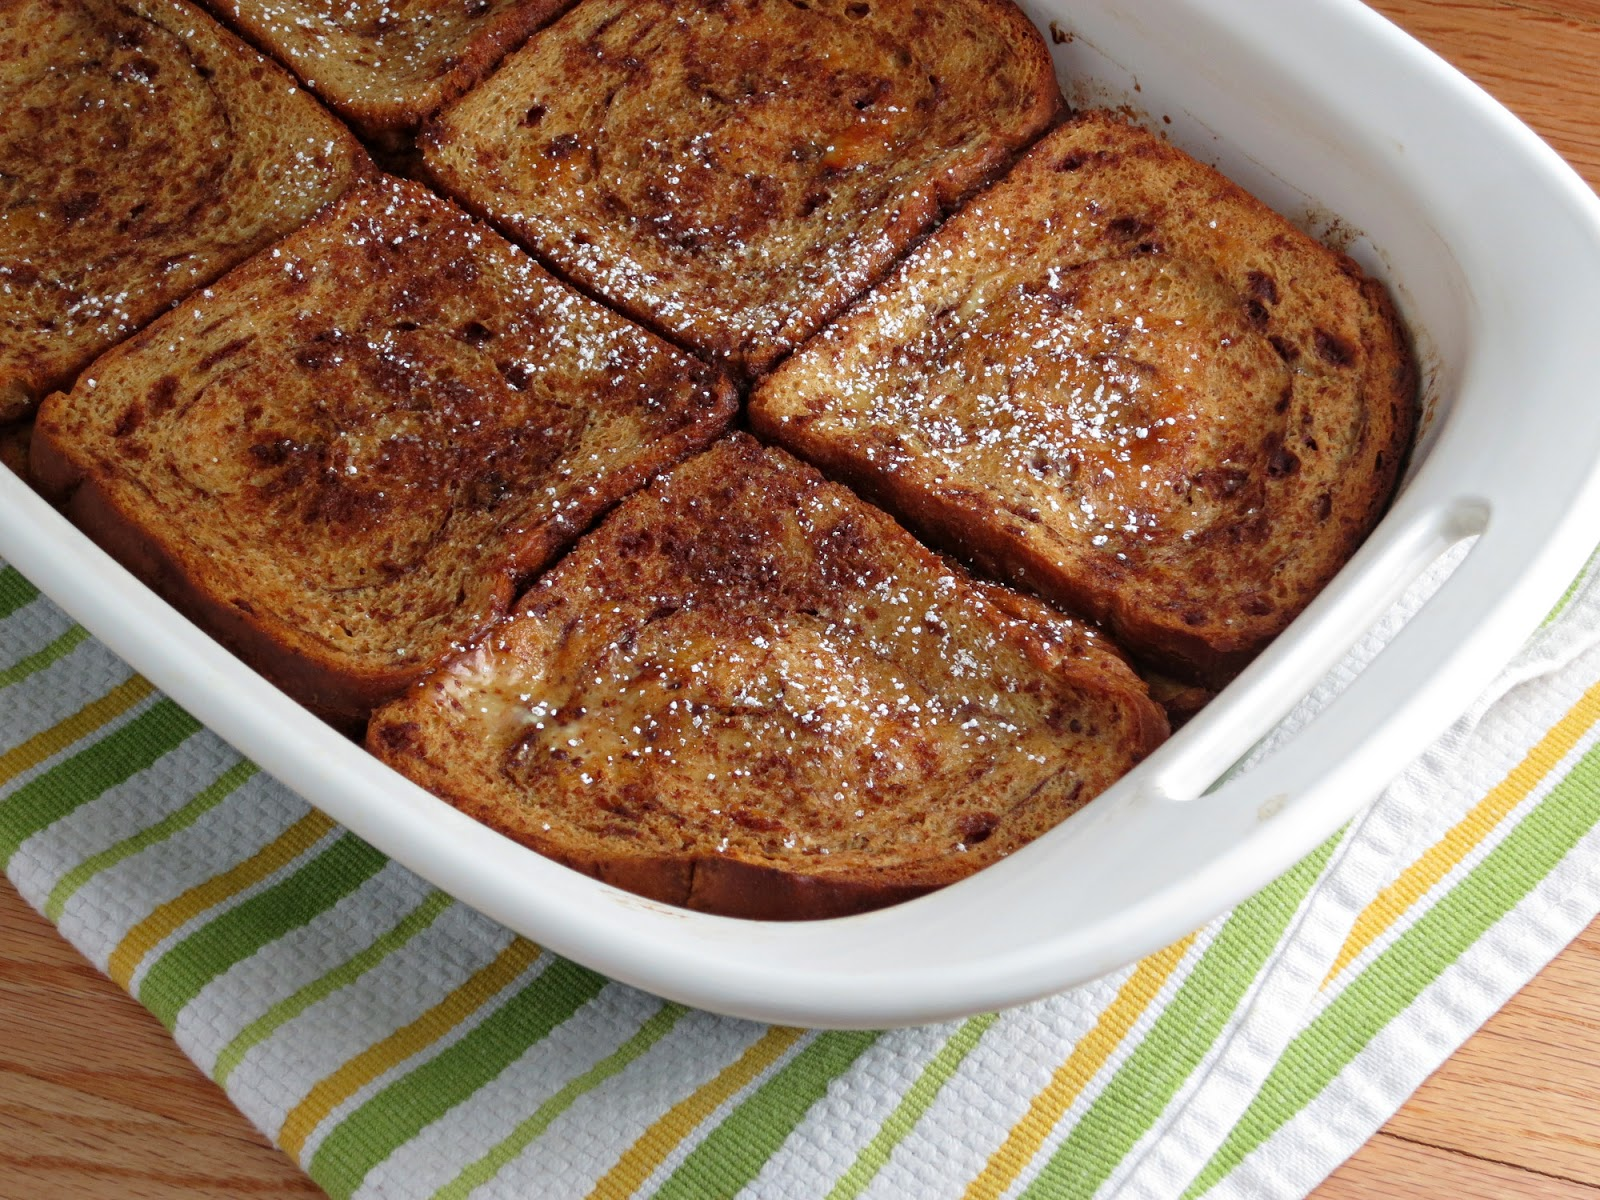 Baked Cinnamon French Toast - Alida's Kitchen